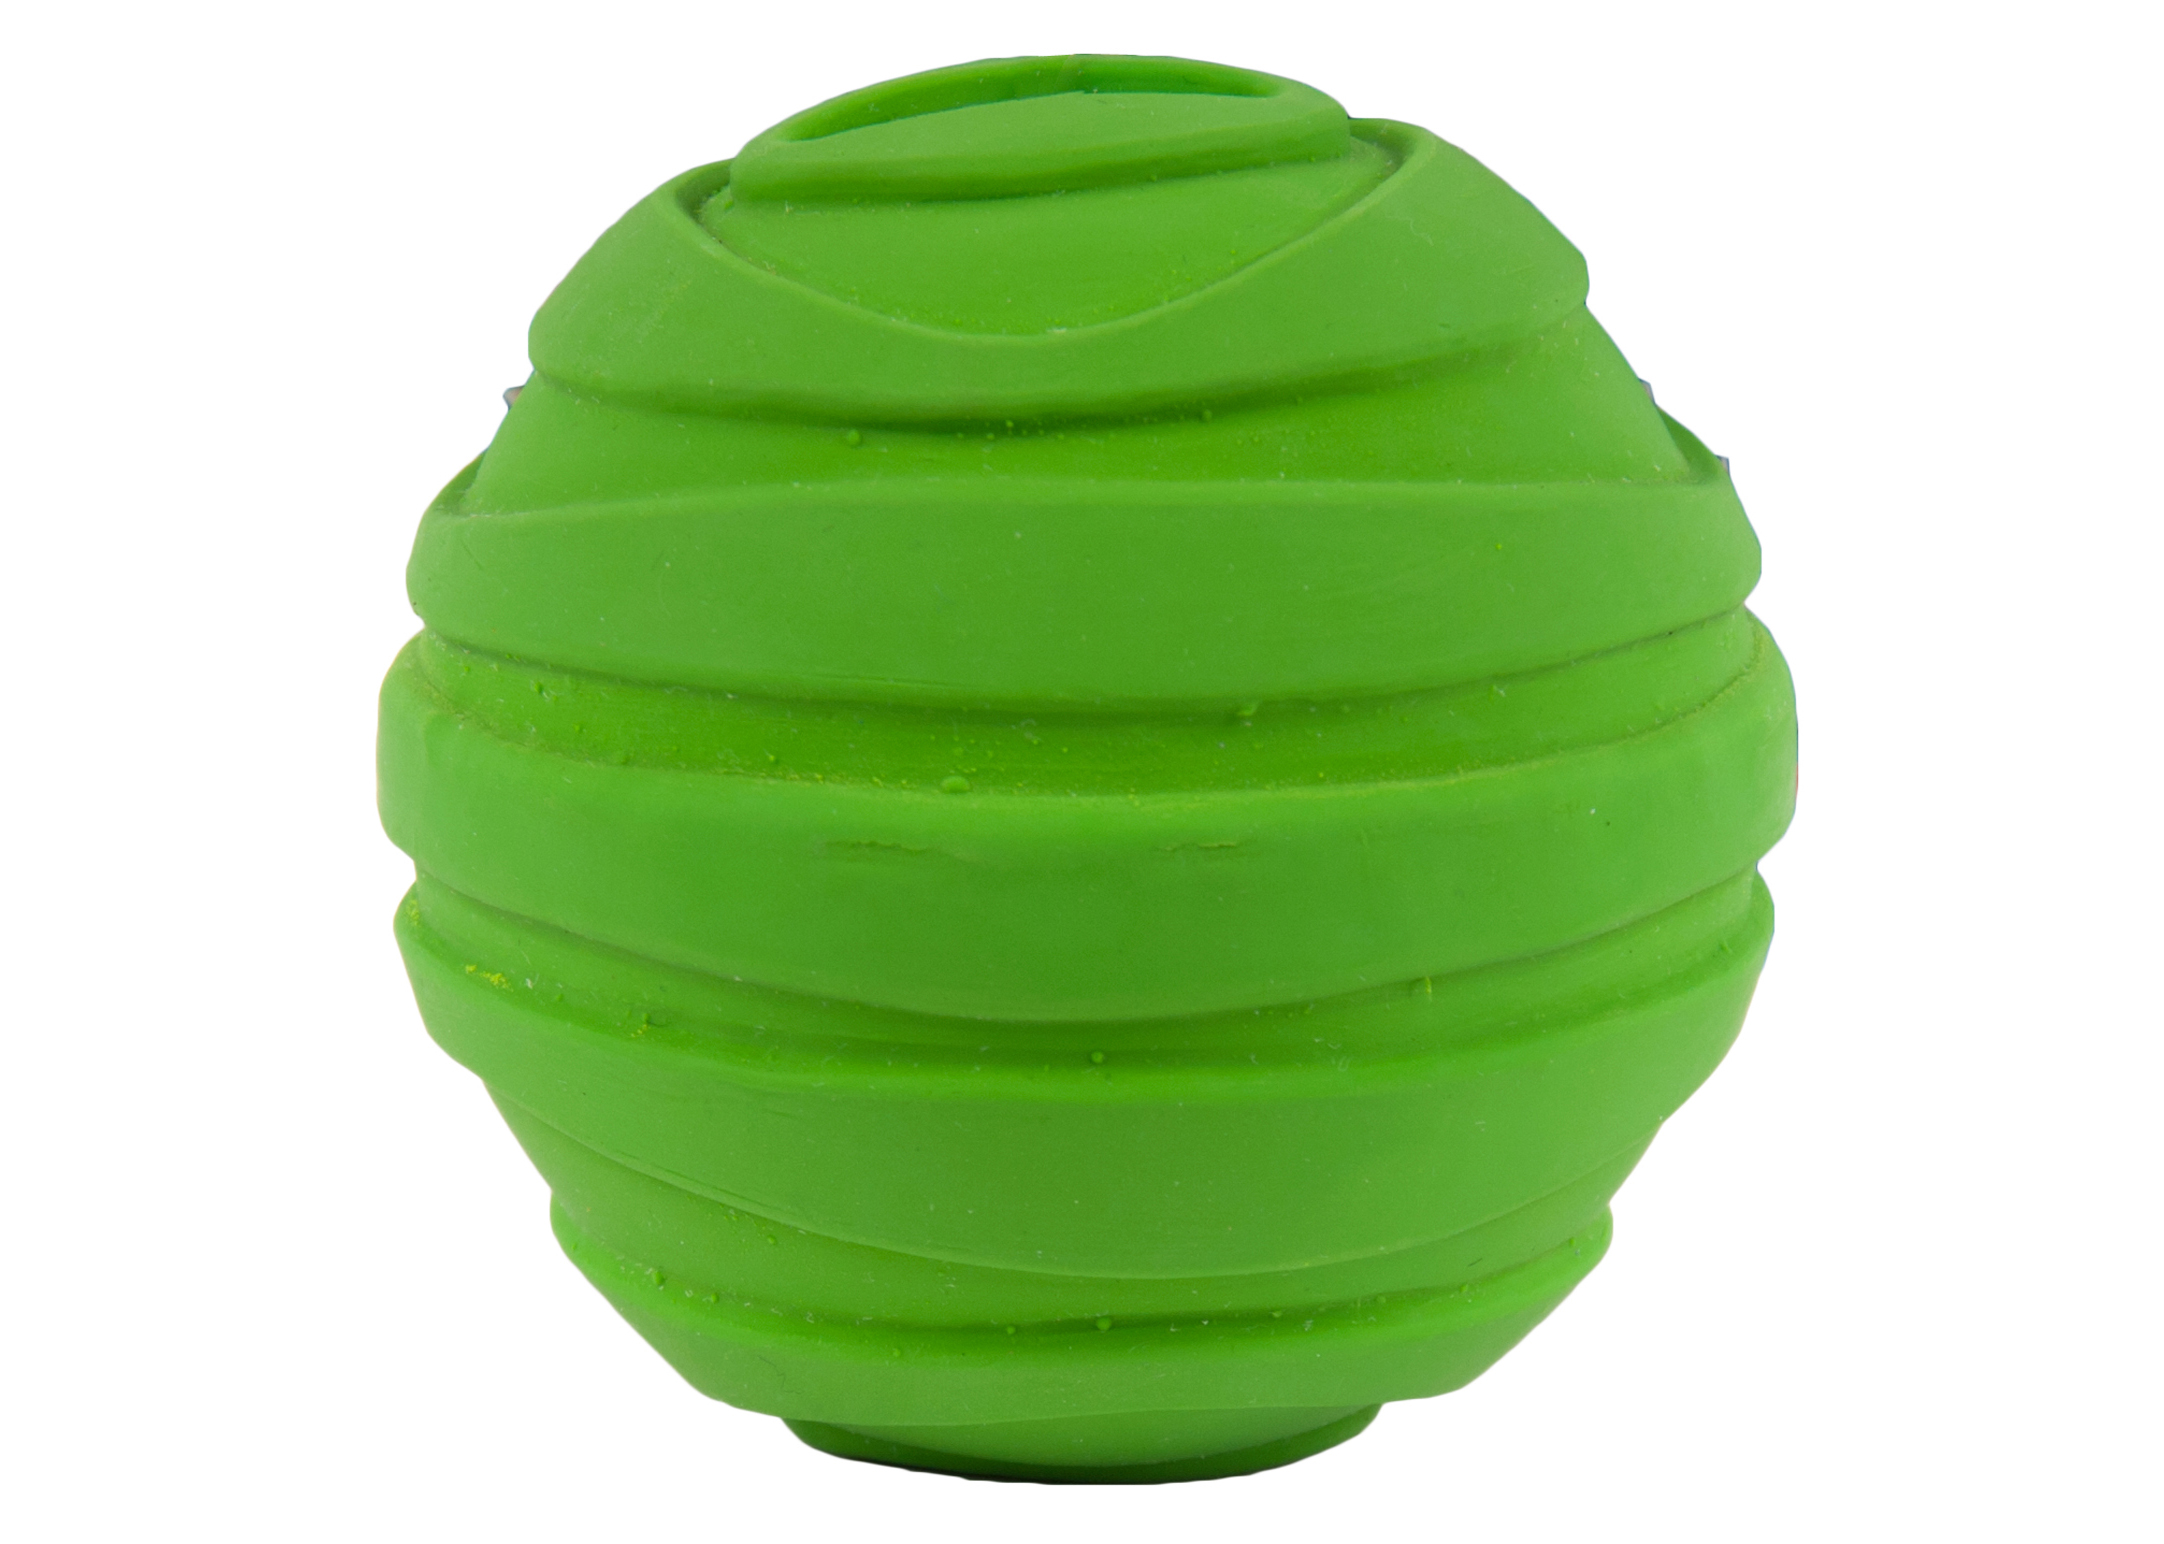 Chuckle City Squeaky Latex Ball 7,5cm Green Toys